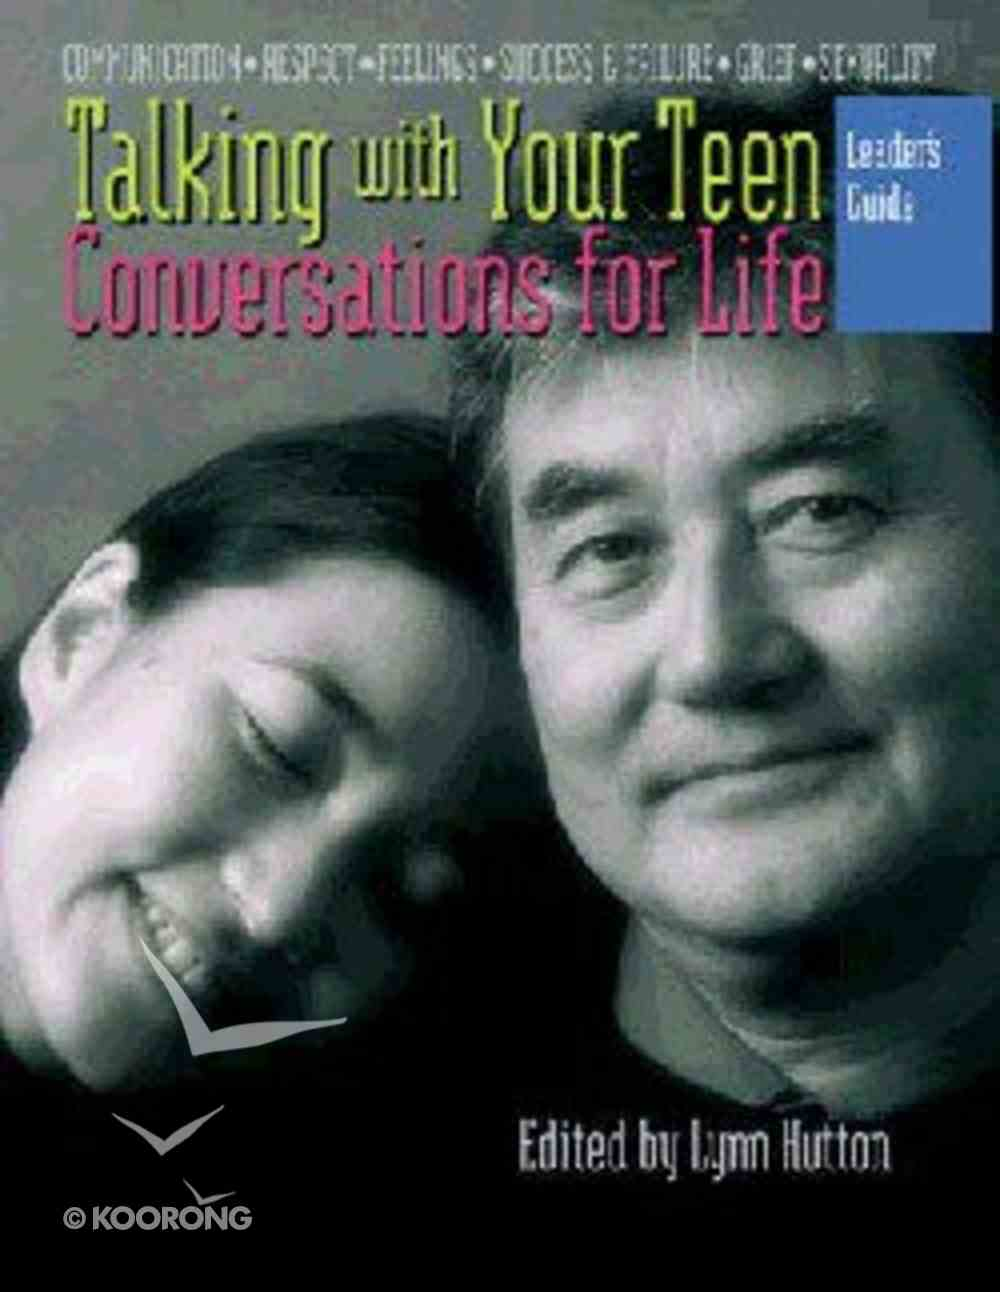 Conversations For Life: Talking With Your Teen (Leader's Guide) Paperback